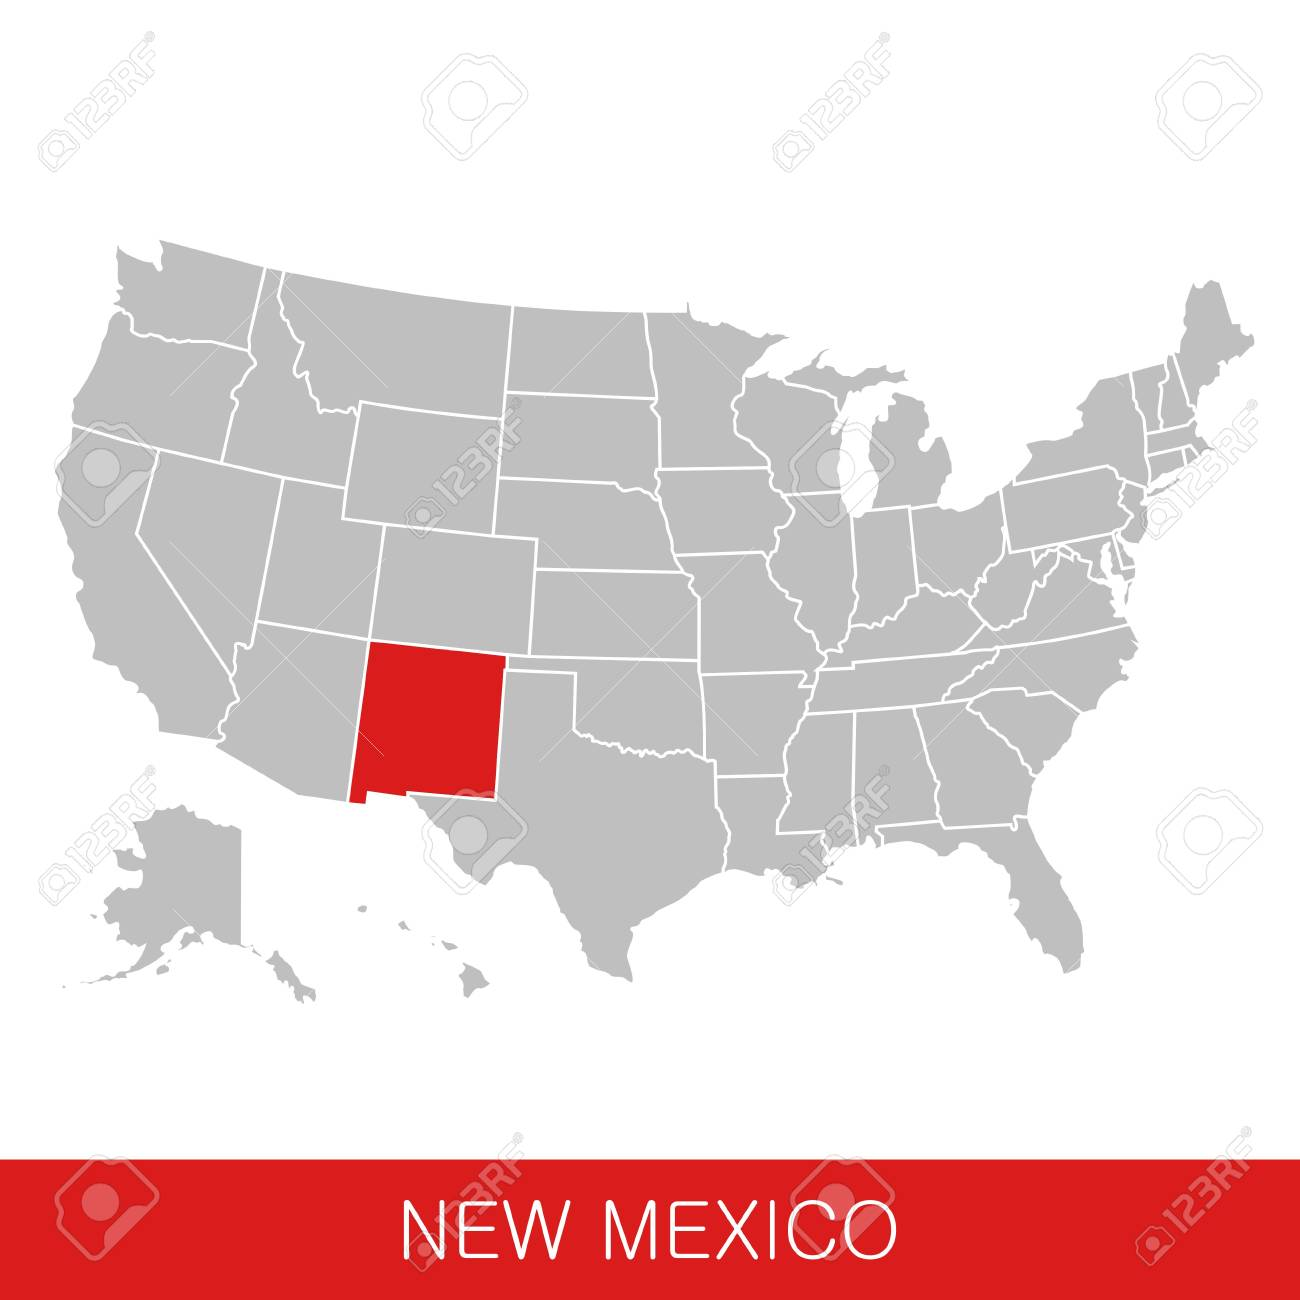 United States of America with the State of New Mexico selected...